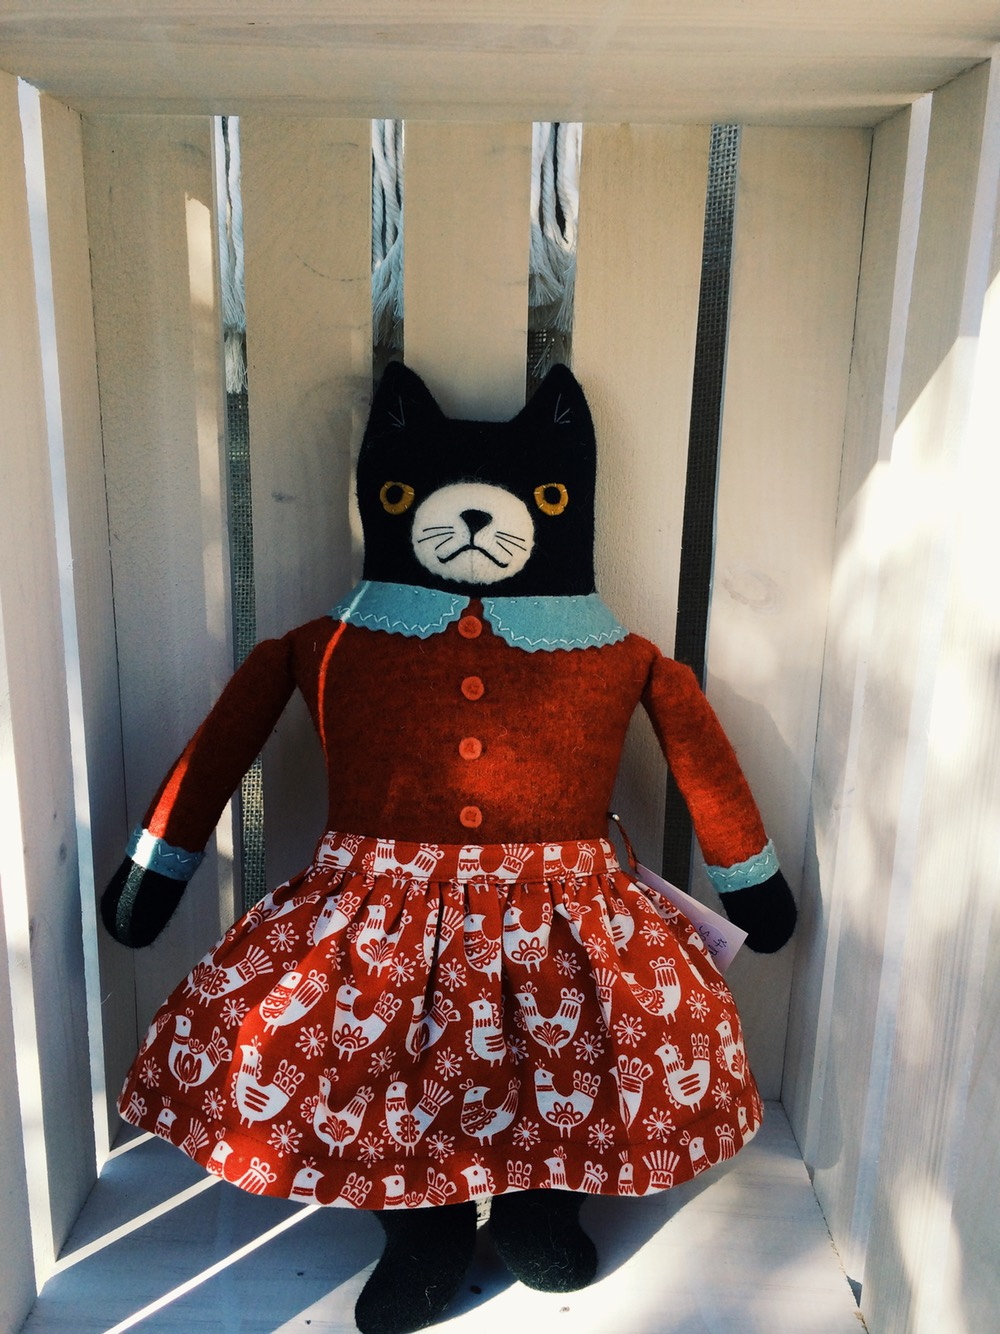 Kitty Doll I bought from Mimi Kirschner Pop up shop